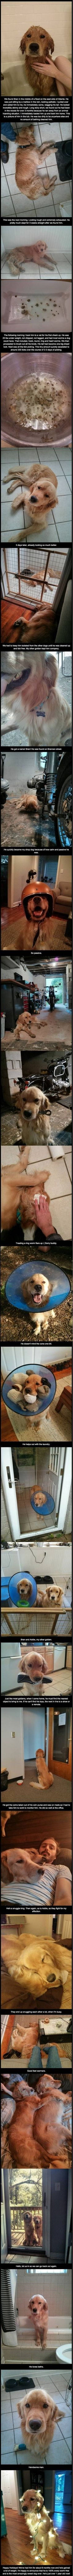 Here's the Story Of Bran A Golden Retriever Rescued From Living Alone In The Woods animals dogs adorable dog story puppy animal pets stories heart warming golden retriever Animals And Pets, Baby Animals, Funny Animals, Cute Animals, I Love Dogs, Puppy Love, Cute Dogs, Gato Animal, Humanity Restored